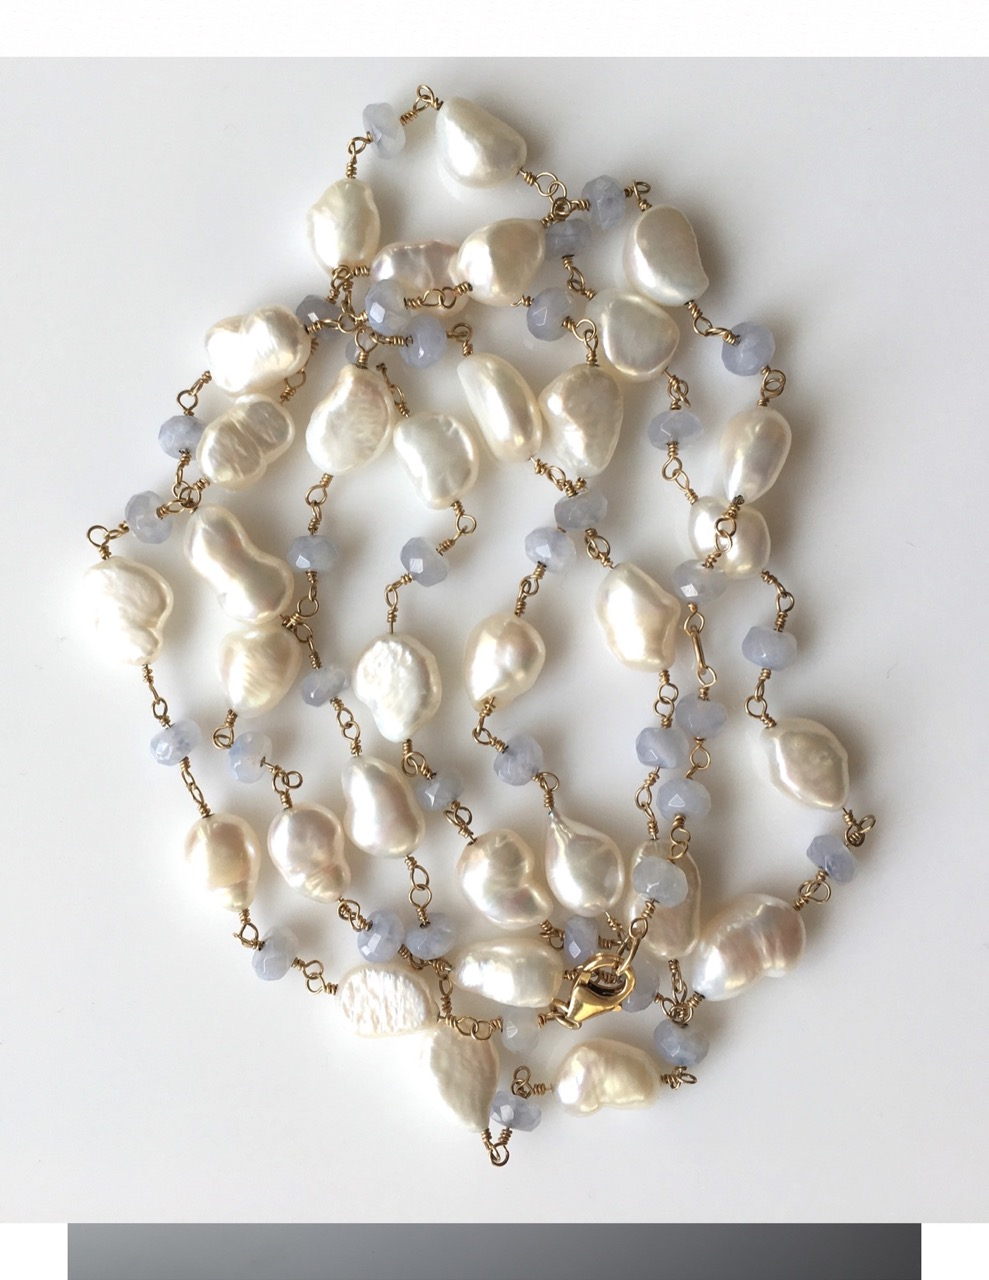 Mew Chiu Fresh Water Pearl and Chalcedony wrapped Bead Necklace (Gold -filled wire)  Value: $200.--   Mew Chiu Fine Jewelry